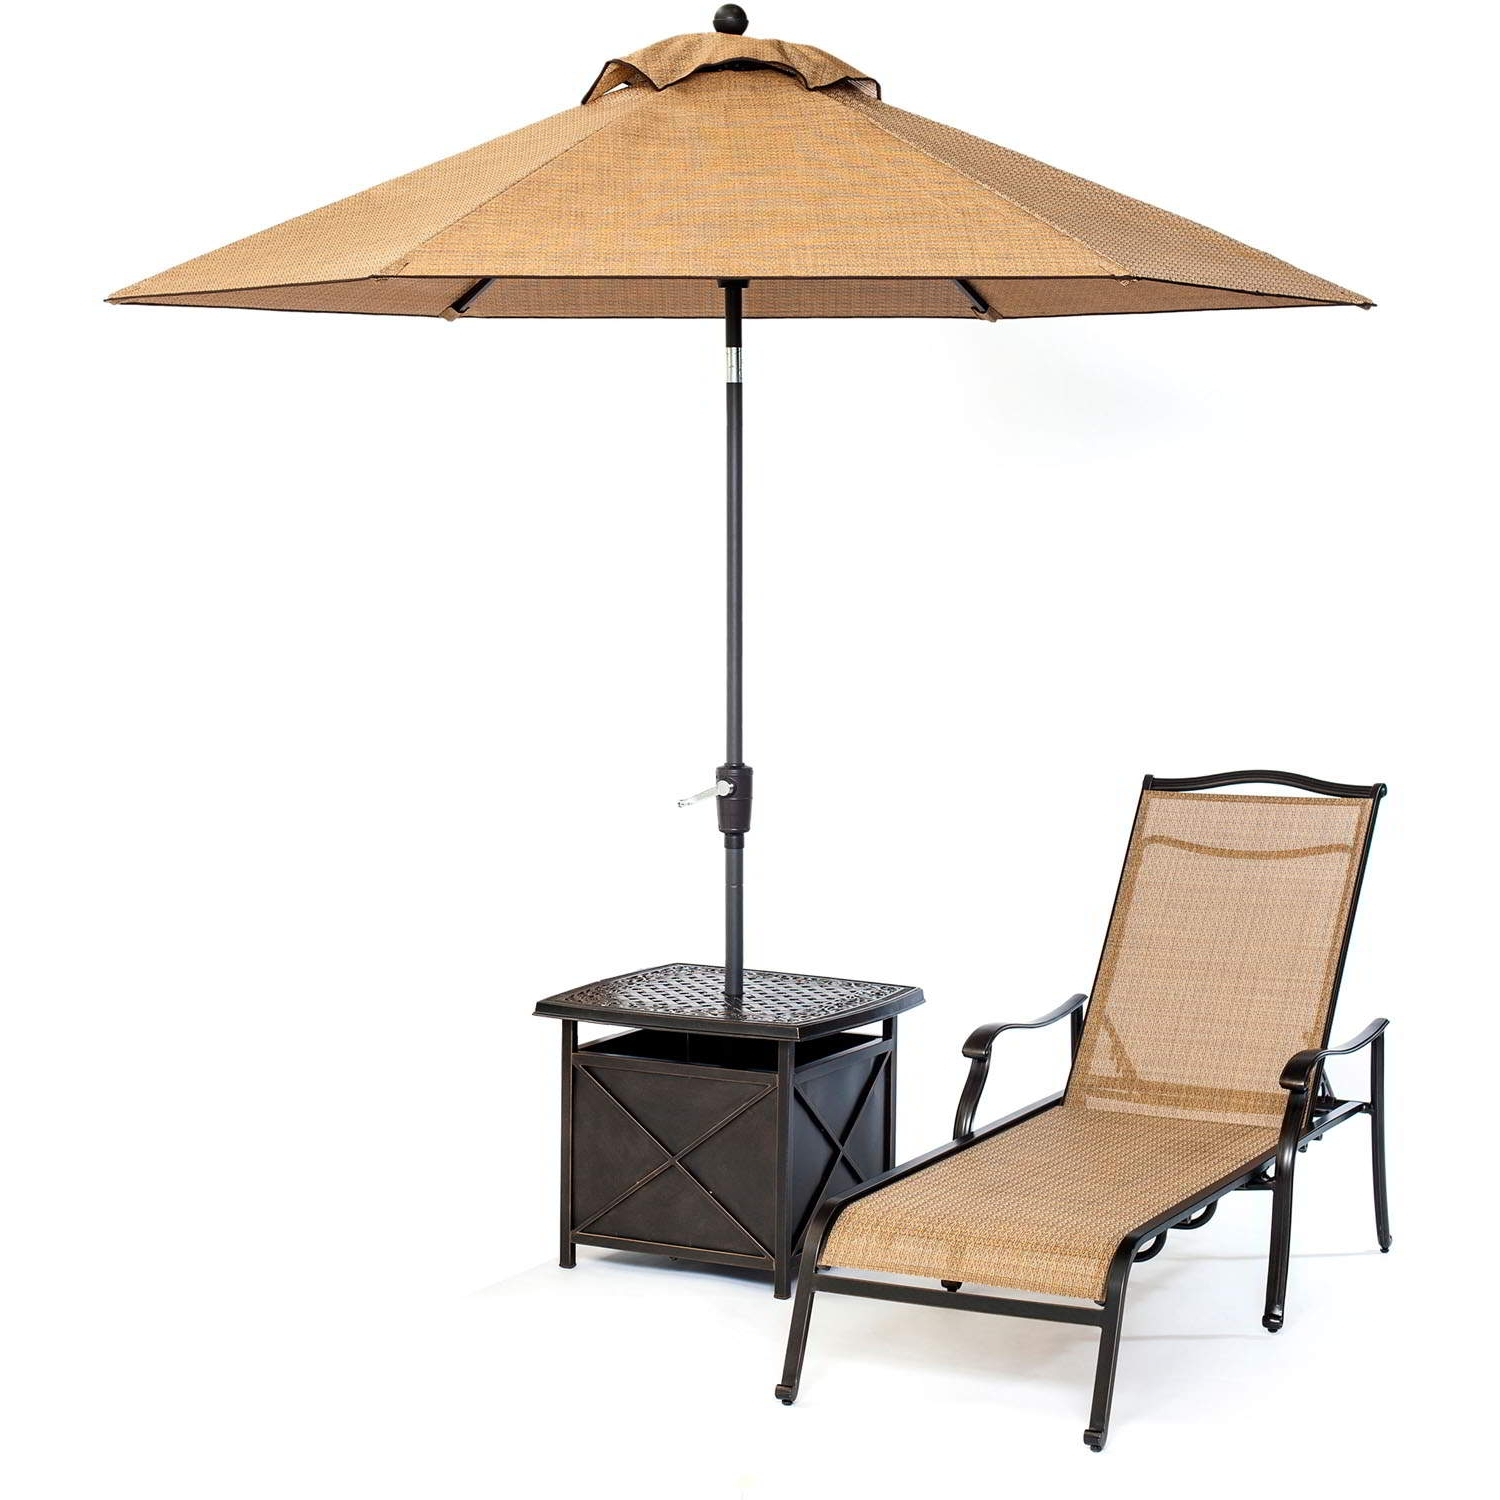 Patio Umbrella Side Tables Throughout Recent Monaco Chaise Lounge Chair With Side Table And Umbrella Zero Gravity (Gallery 12 of 20)